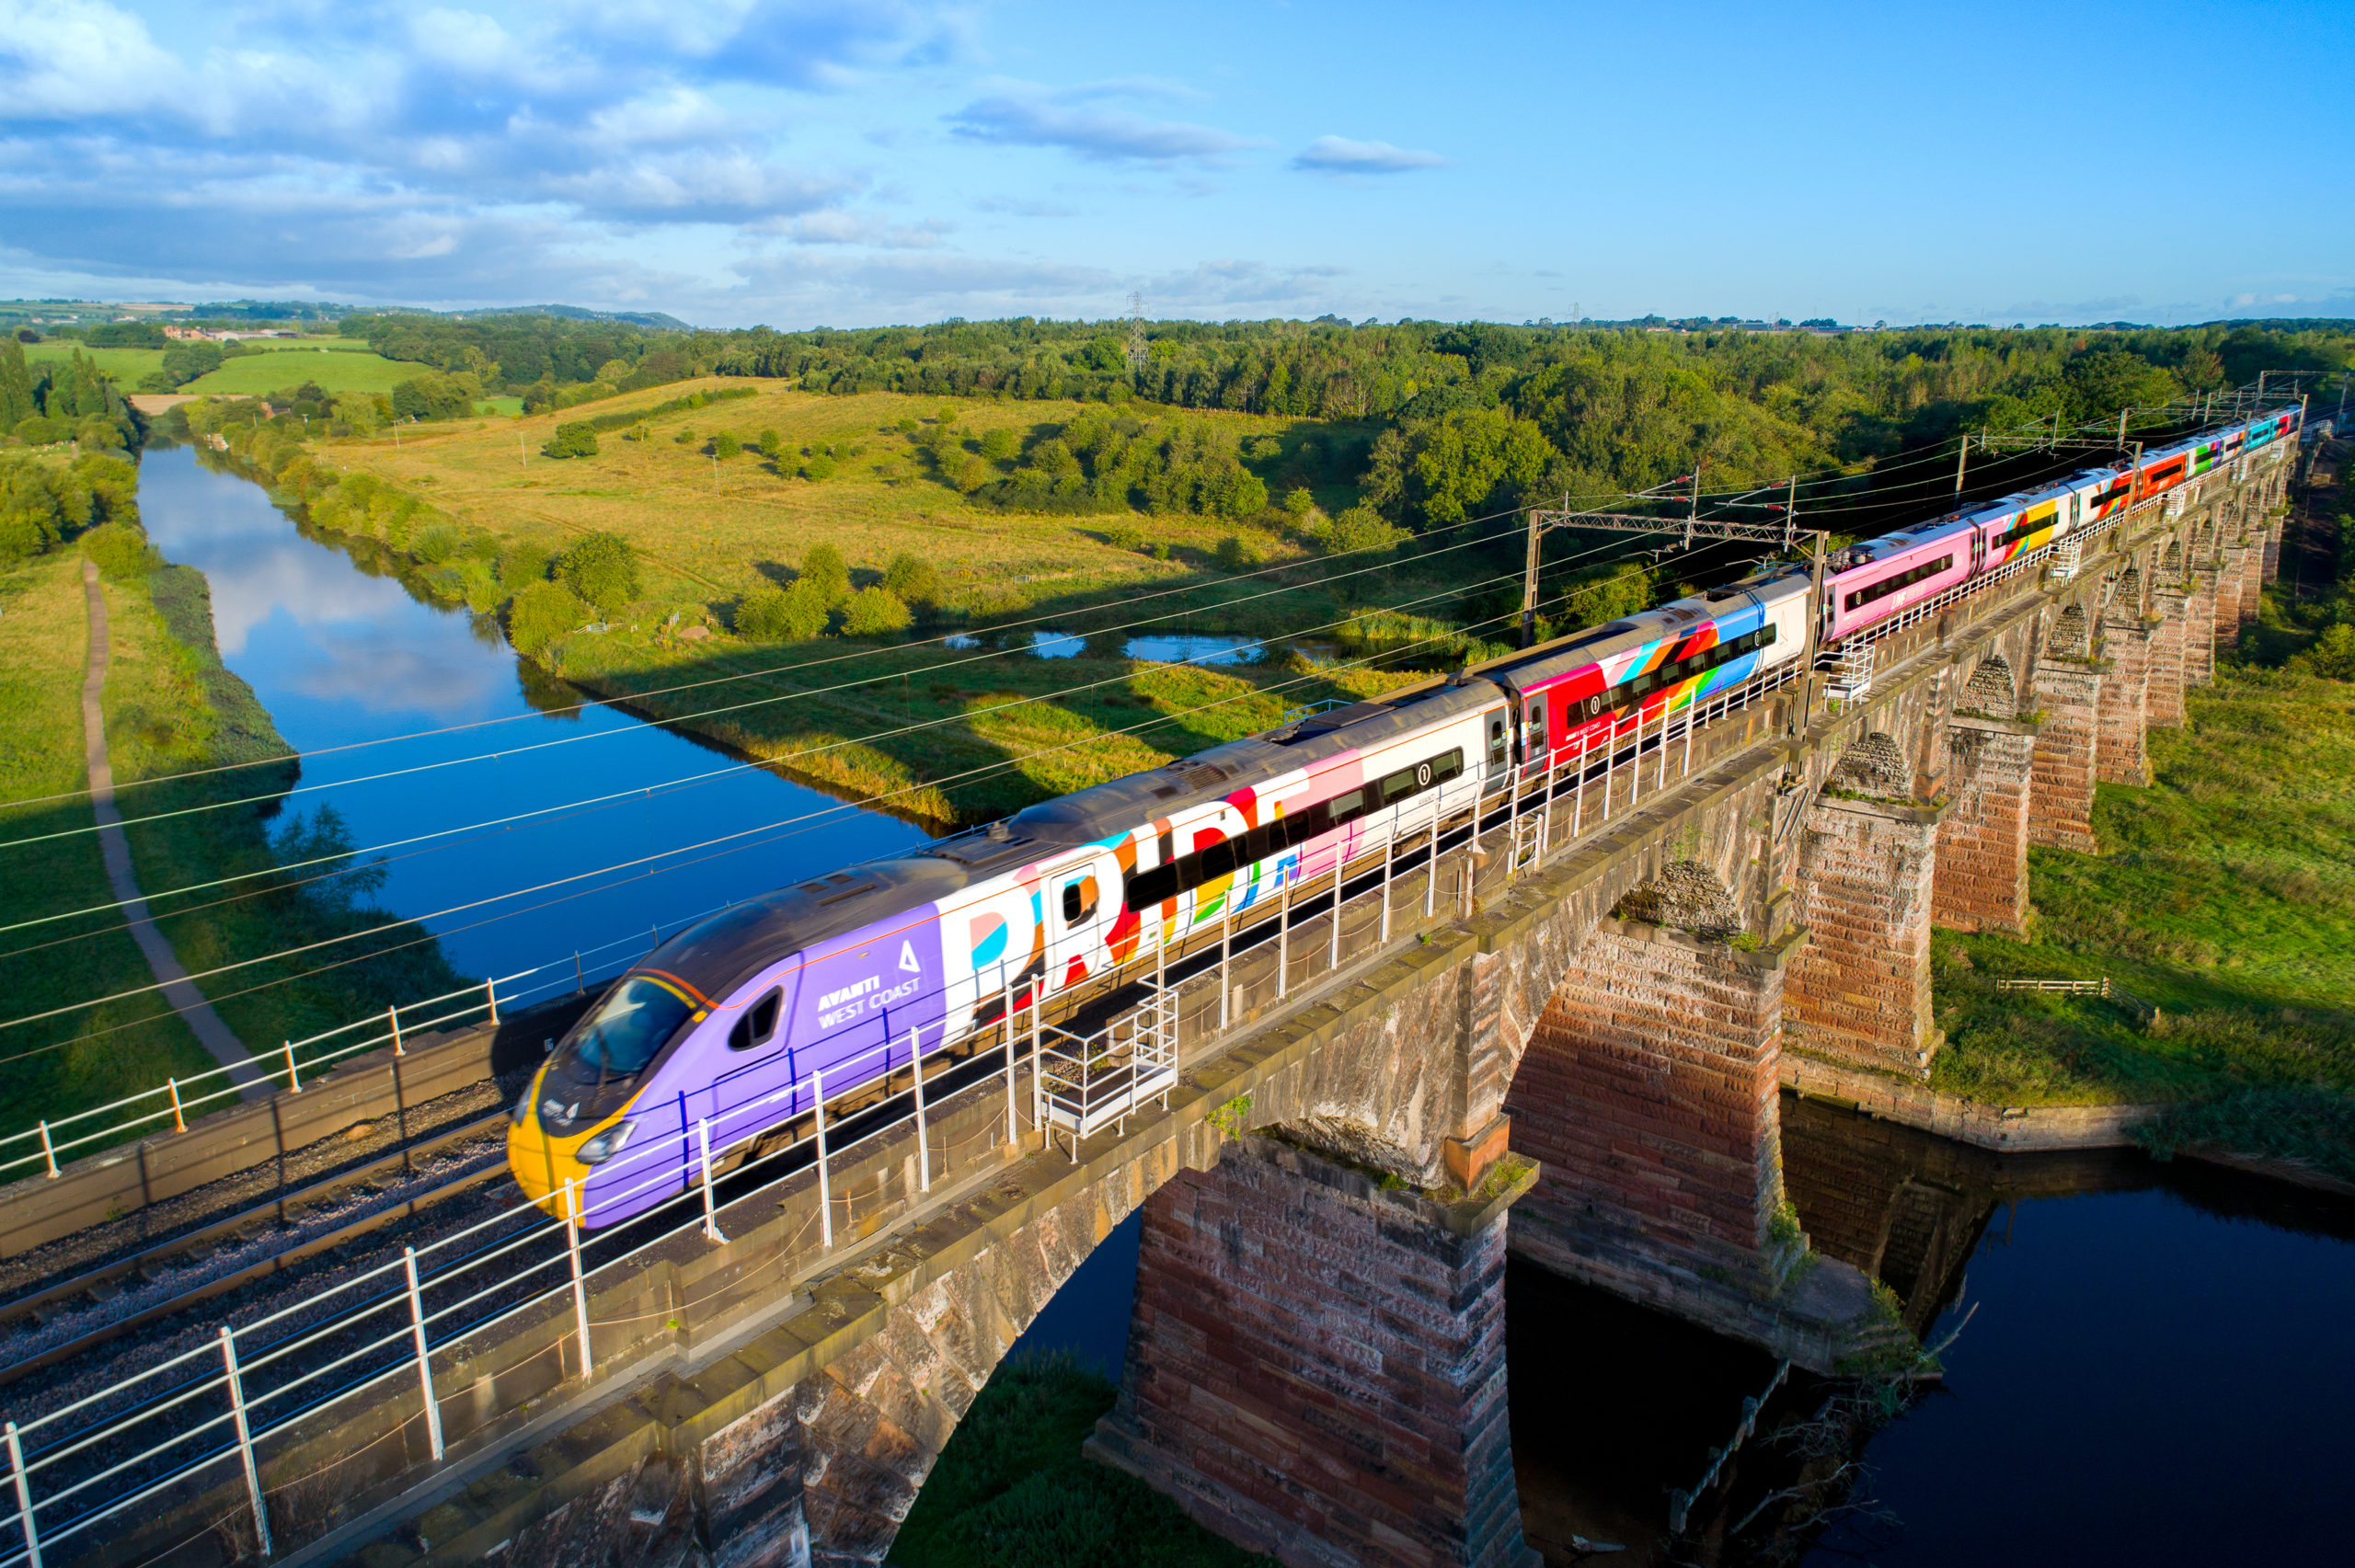 A 265m Pride flag flies proud on the side of the new 11-carriage Avanti West Coast Pride train ahead of its launch service